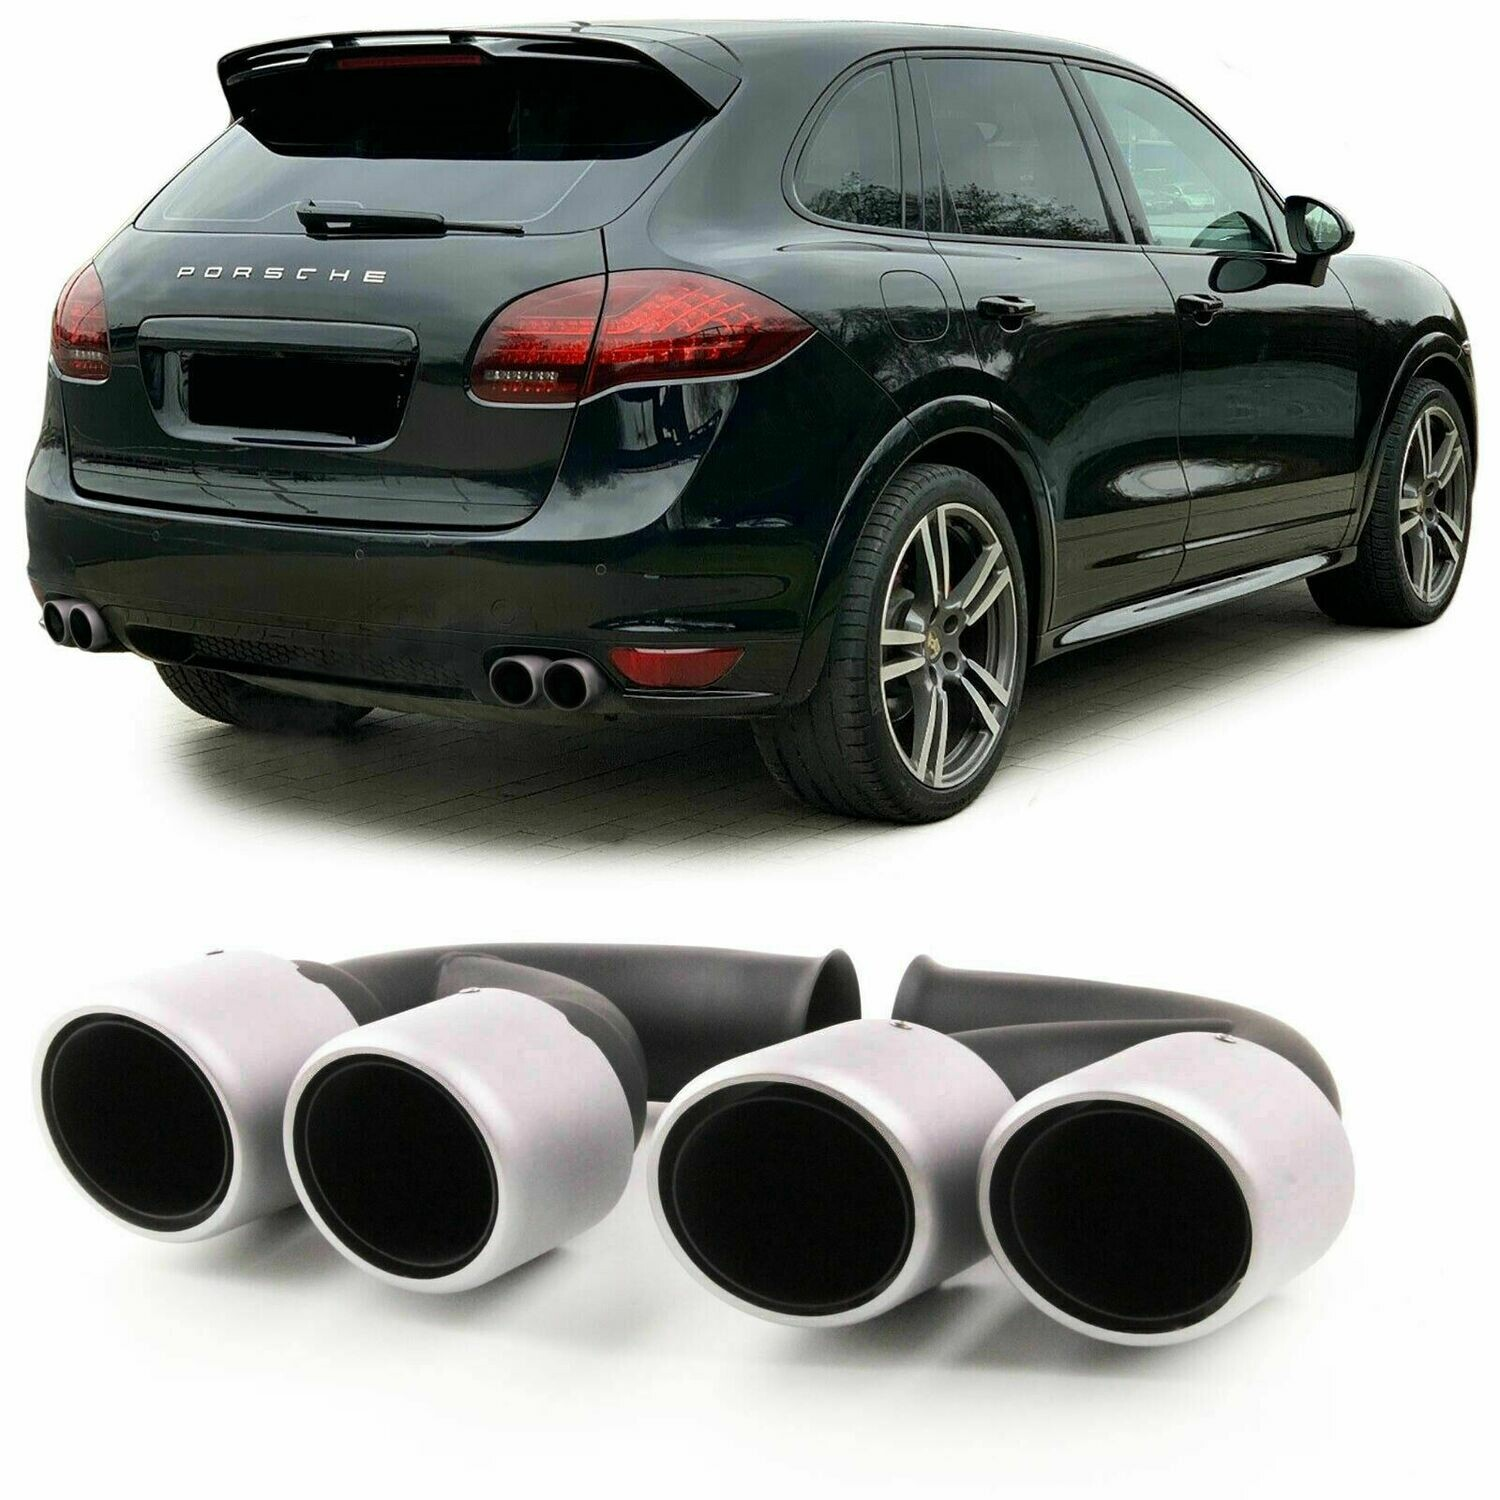 Rear Exhaust Pipes for PORSCHE CAYENNE 92A V8 10-14 BLACK